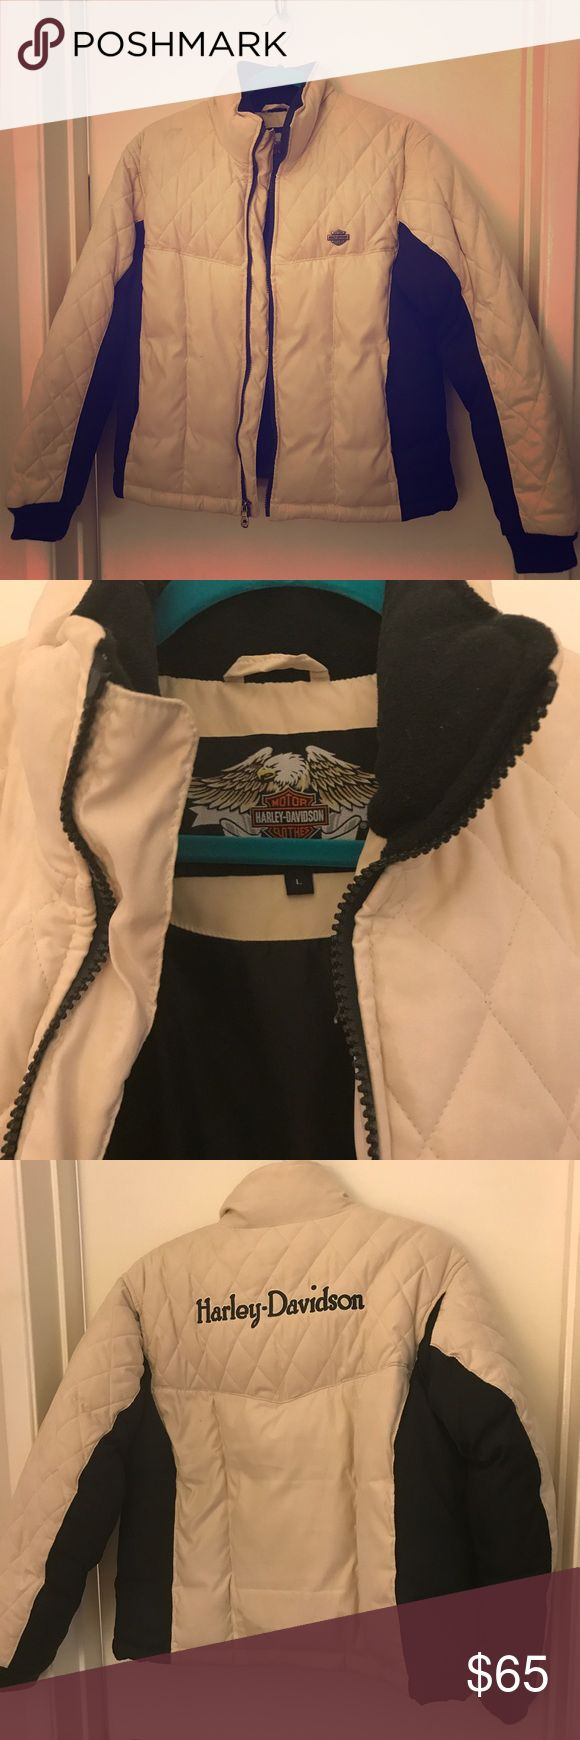 Original Harley-Davidson women's puffer coat! Keep warm on the slopes with this original Harley- Davidson puffer coat in beige and black! Comes with zipper and pocket details. Size large. Fits like a puffy dream!!! Price is negotiable. Harley-Davidson Jackets & Coats Puffers